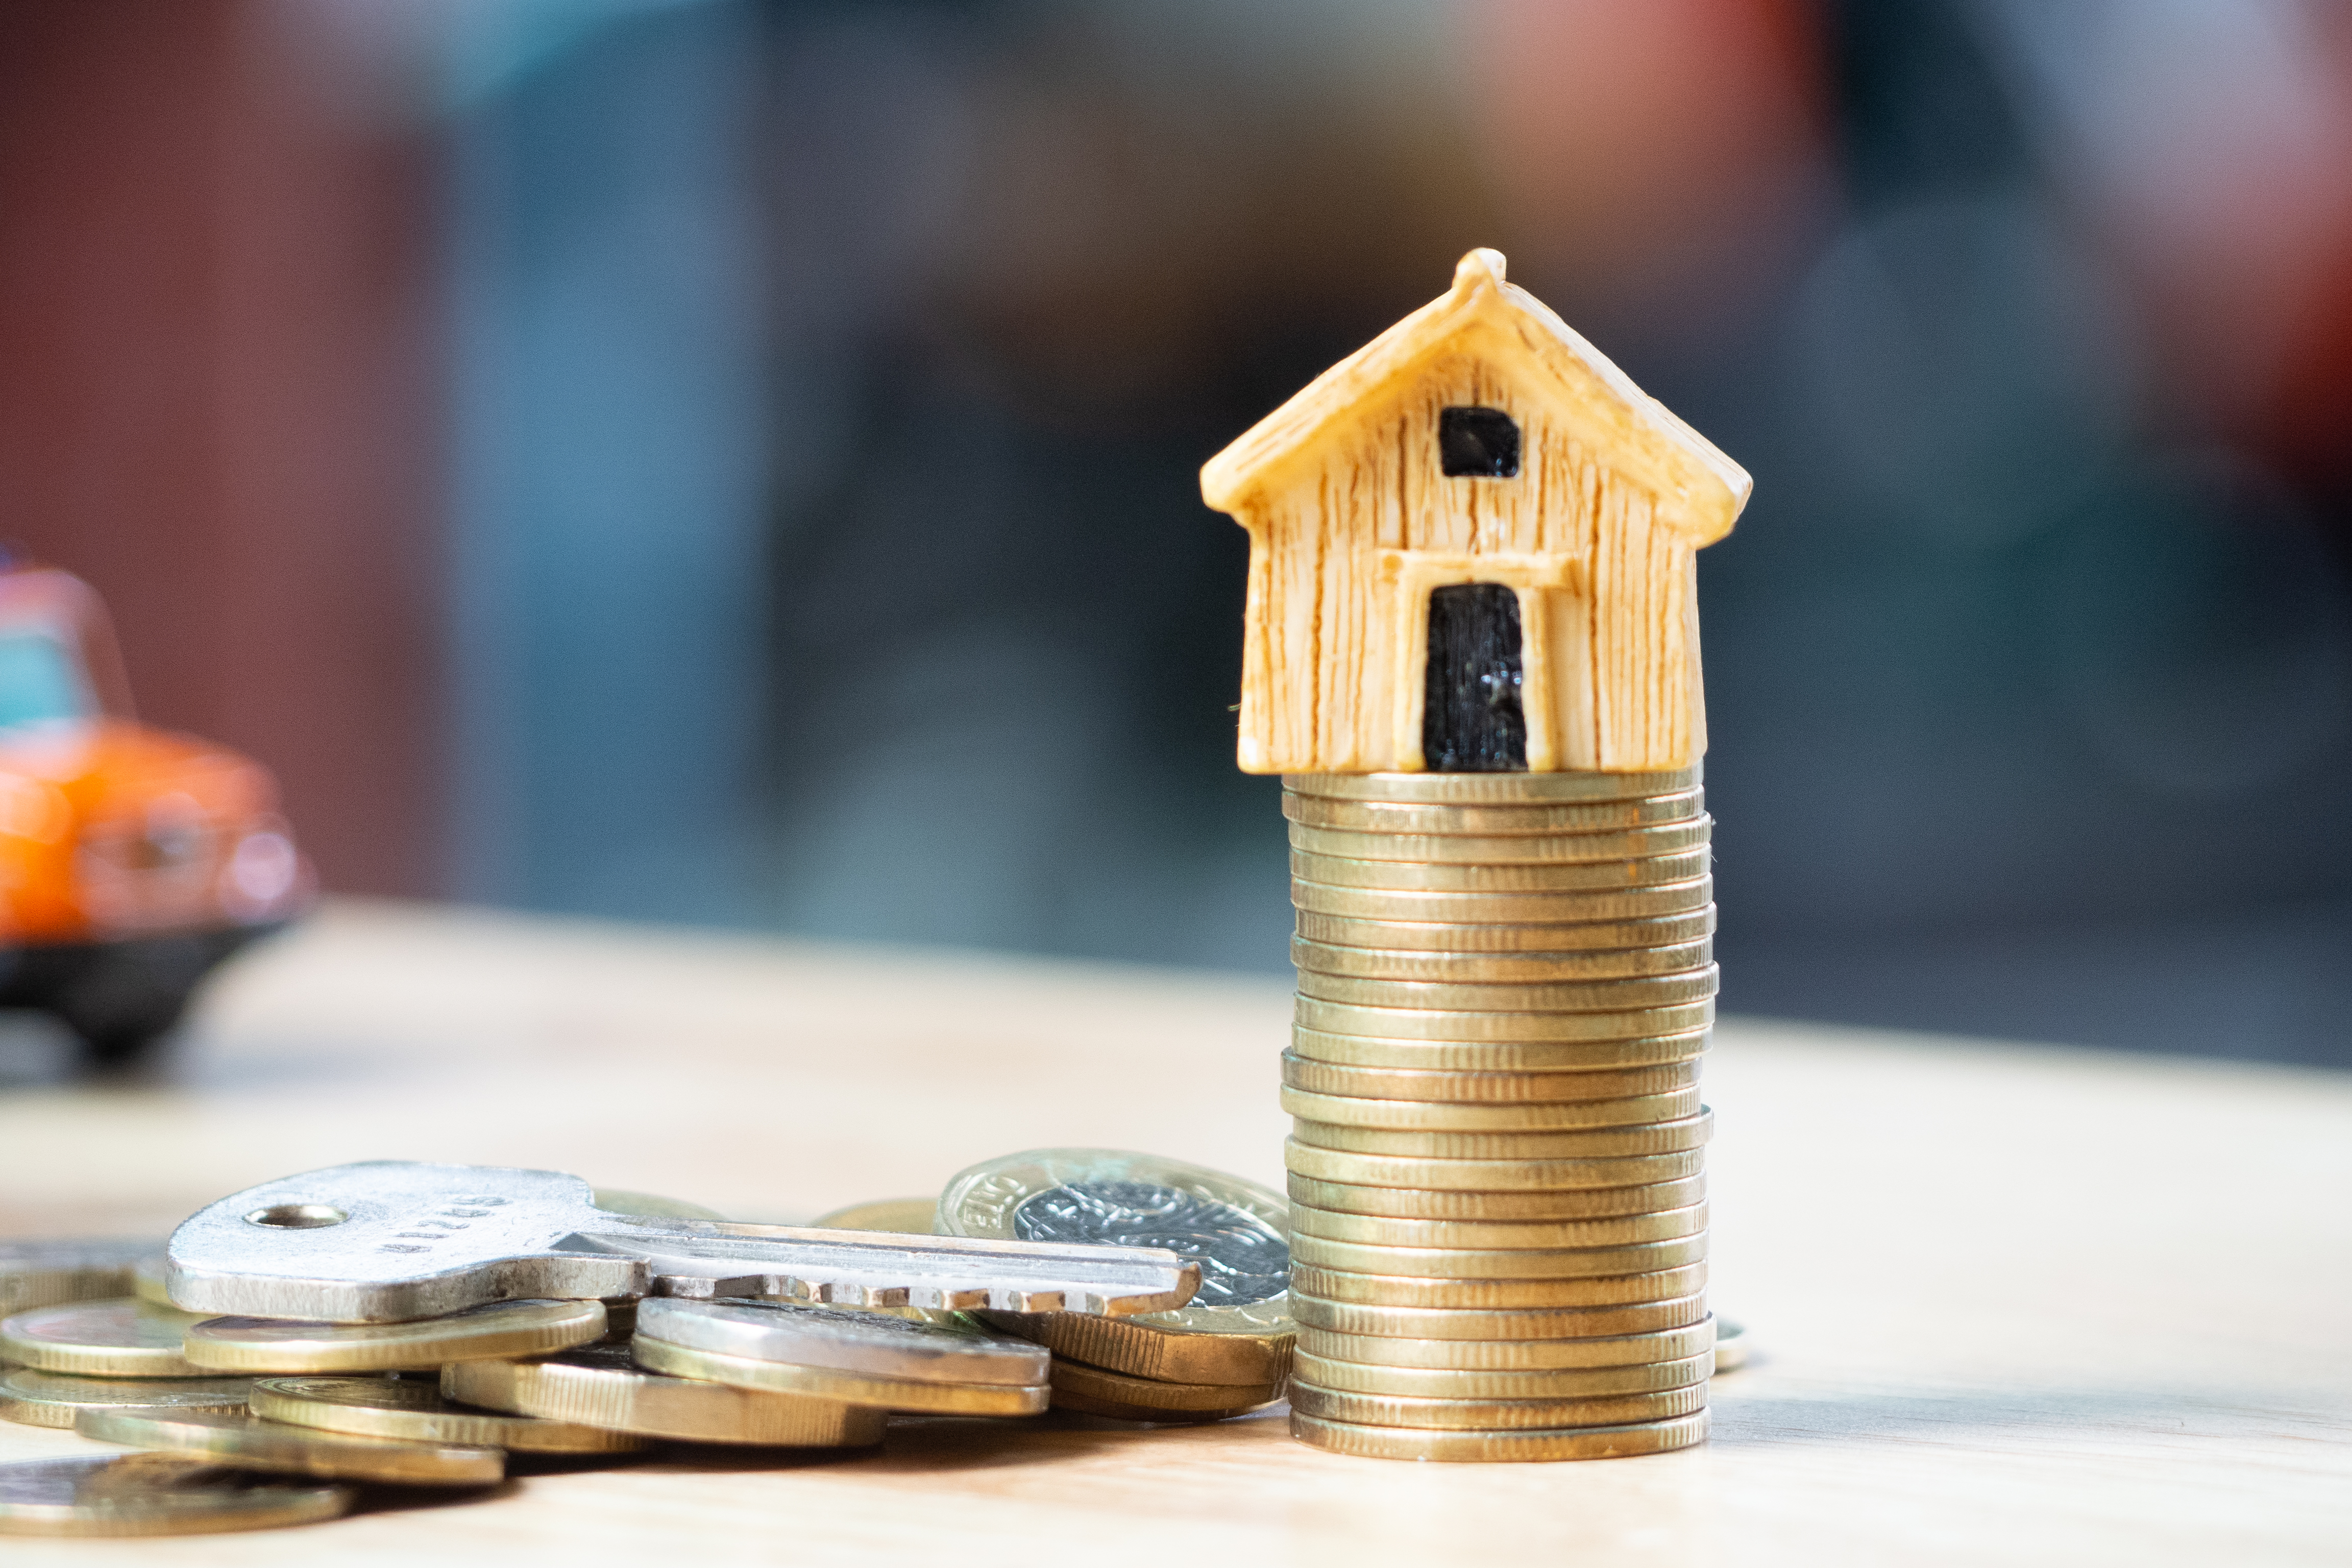 House or Home model on near of coins stack with home key. Concept for loan, property ladder, financial, mortgage, real estate investment, taxes and bonus, investment property